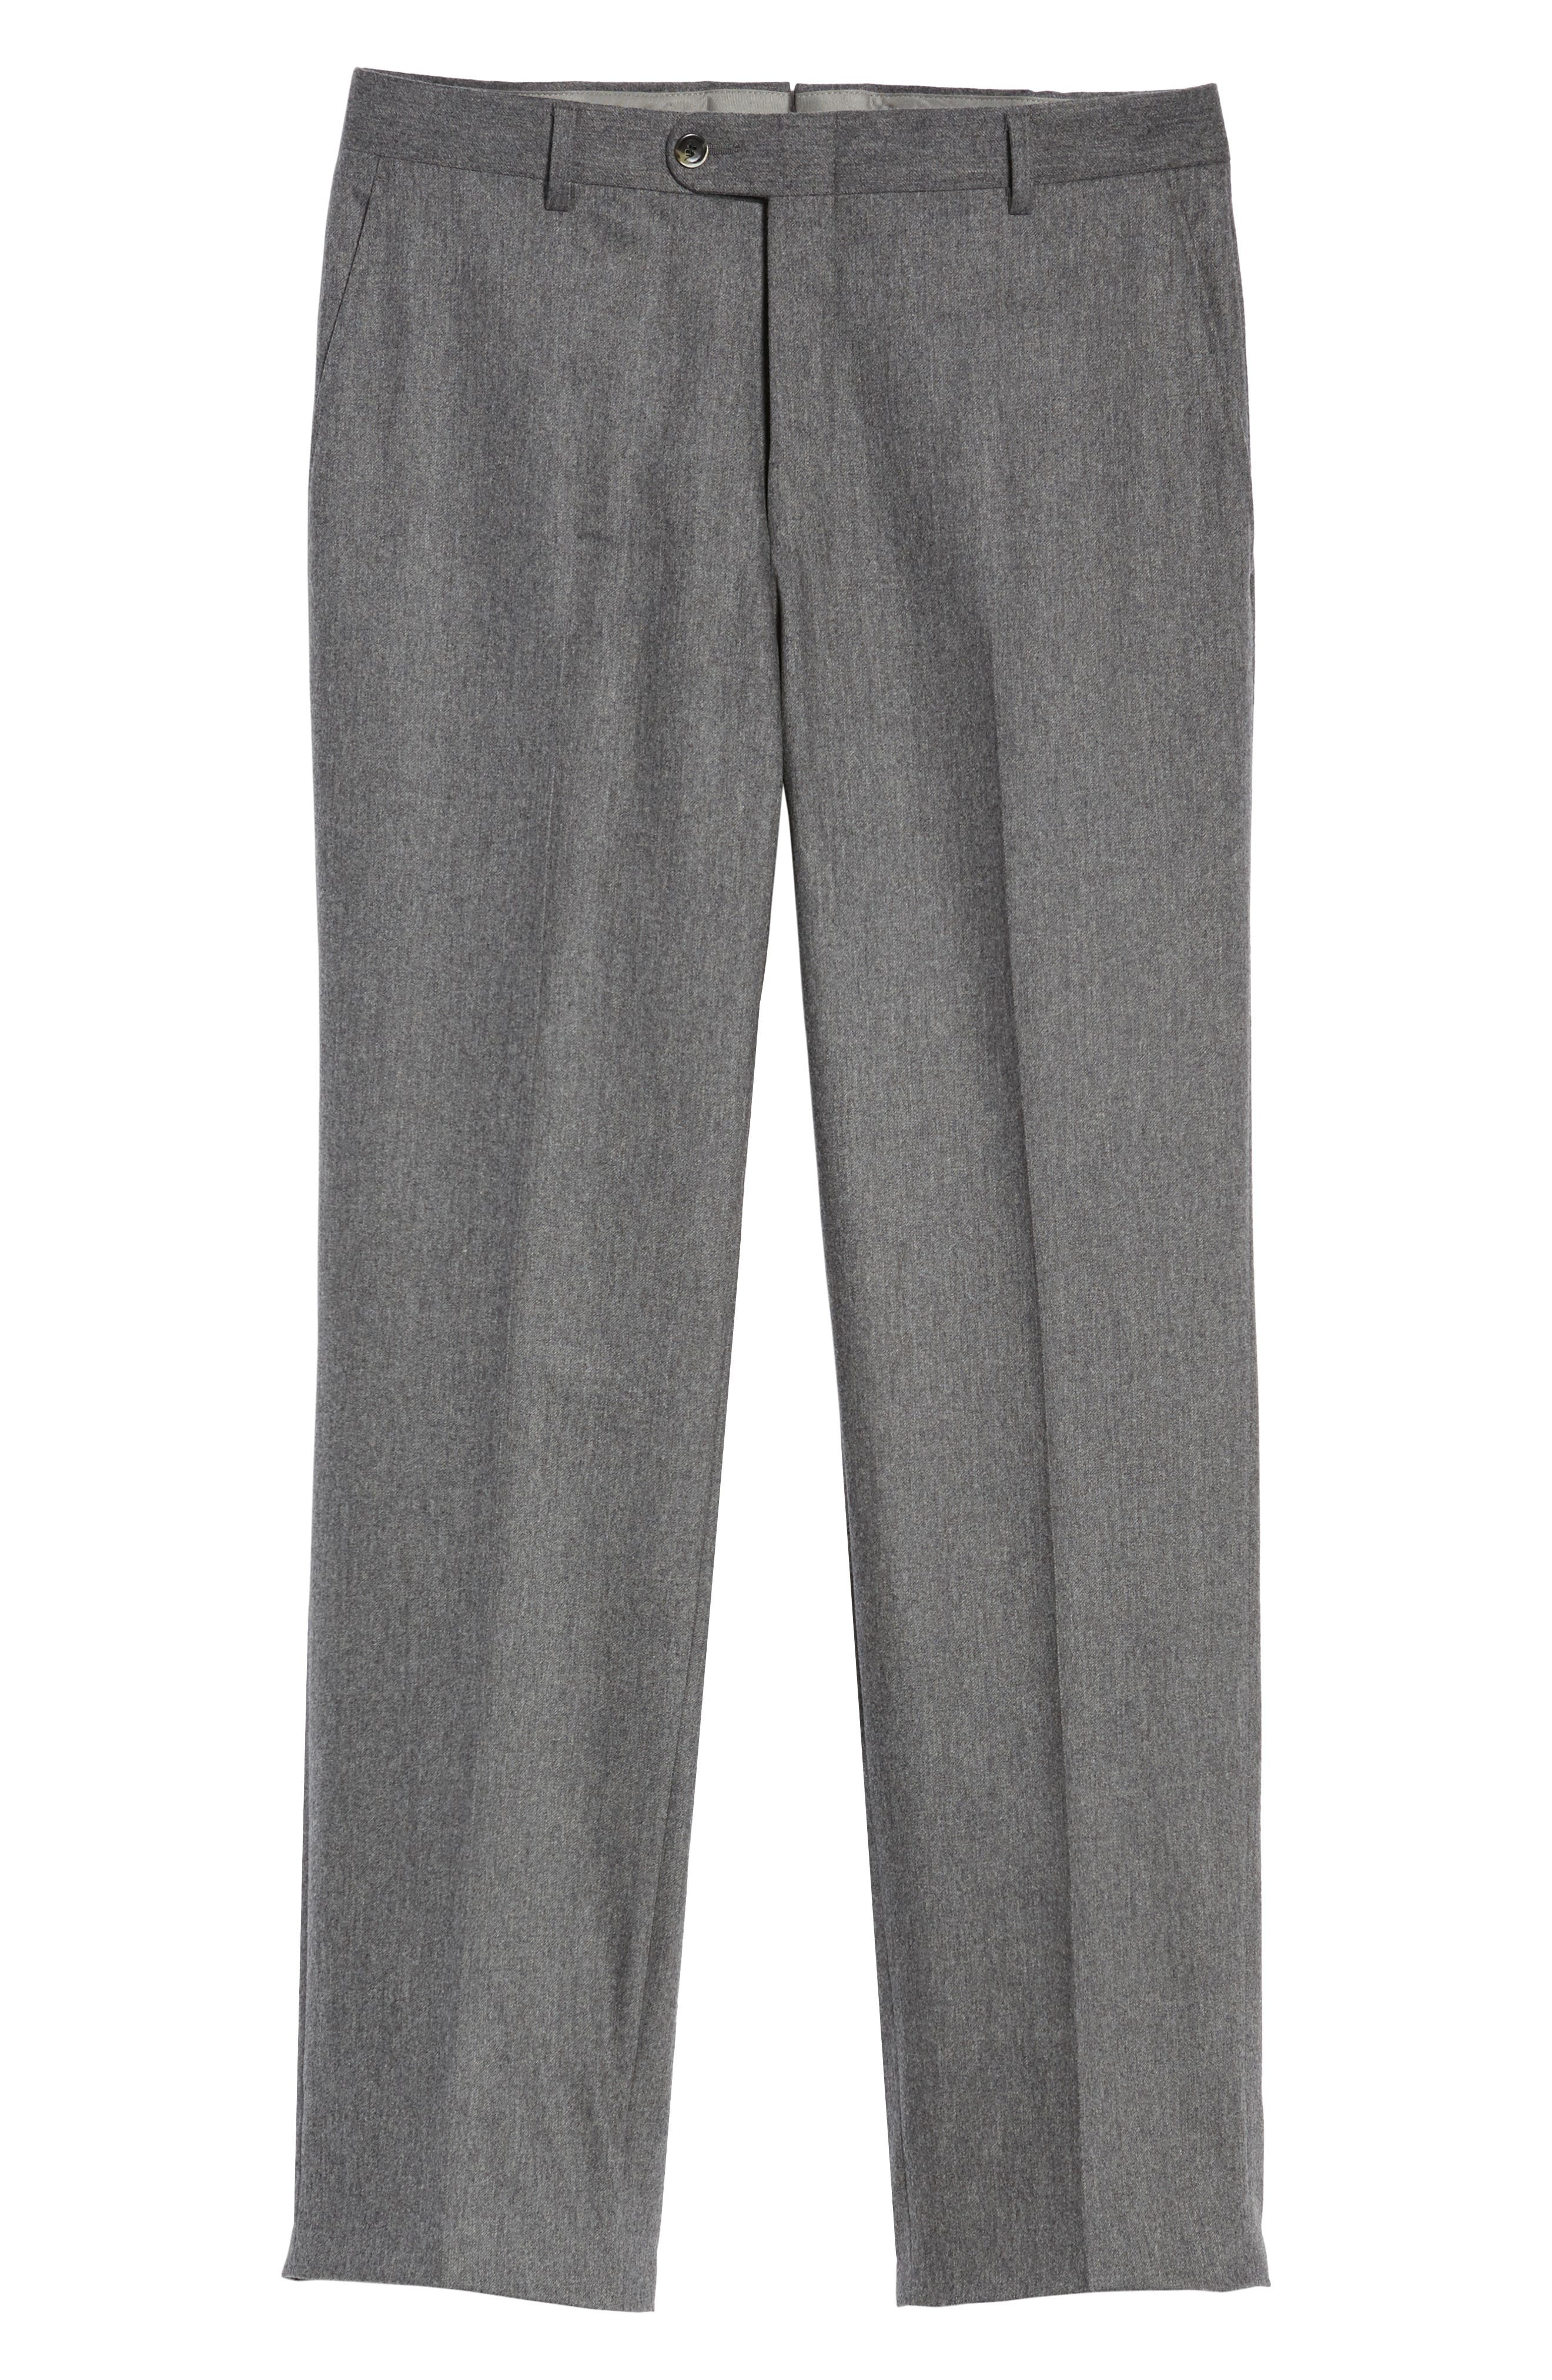 Classic B Fit Flat Front Solid Wool Blend Trousers,                             Alternate thumbnail 6, color,                             030